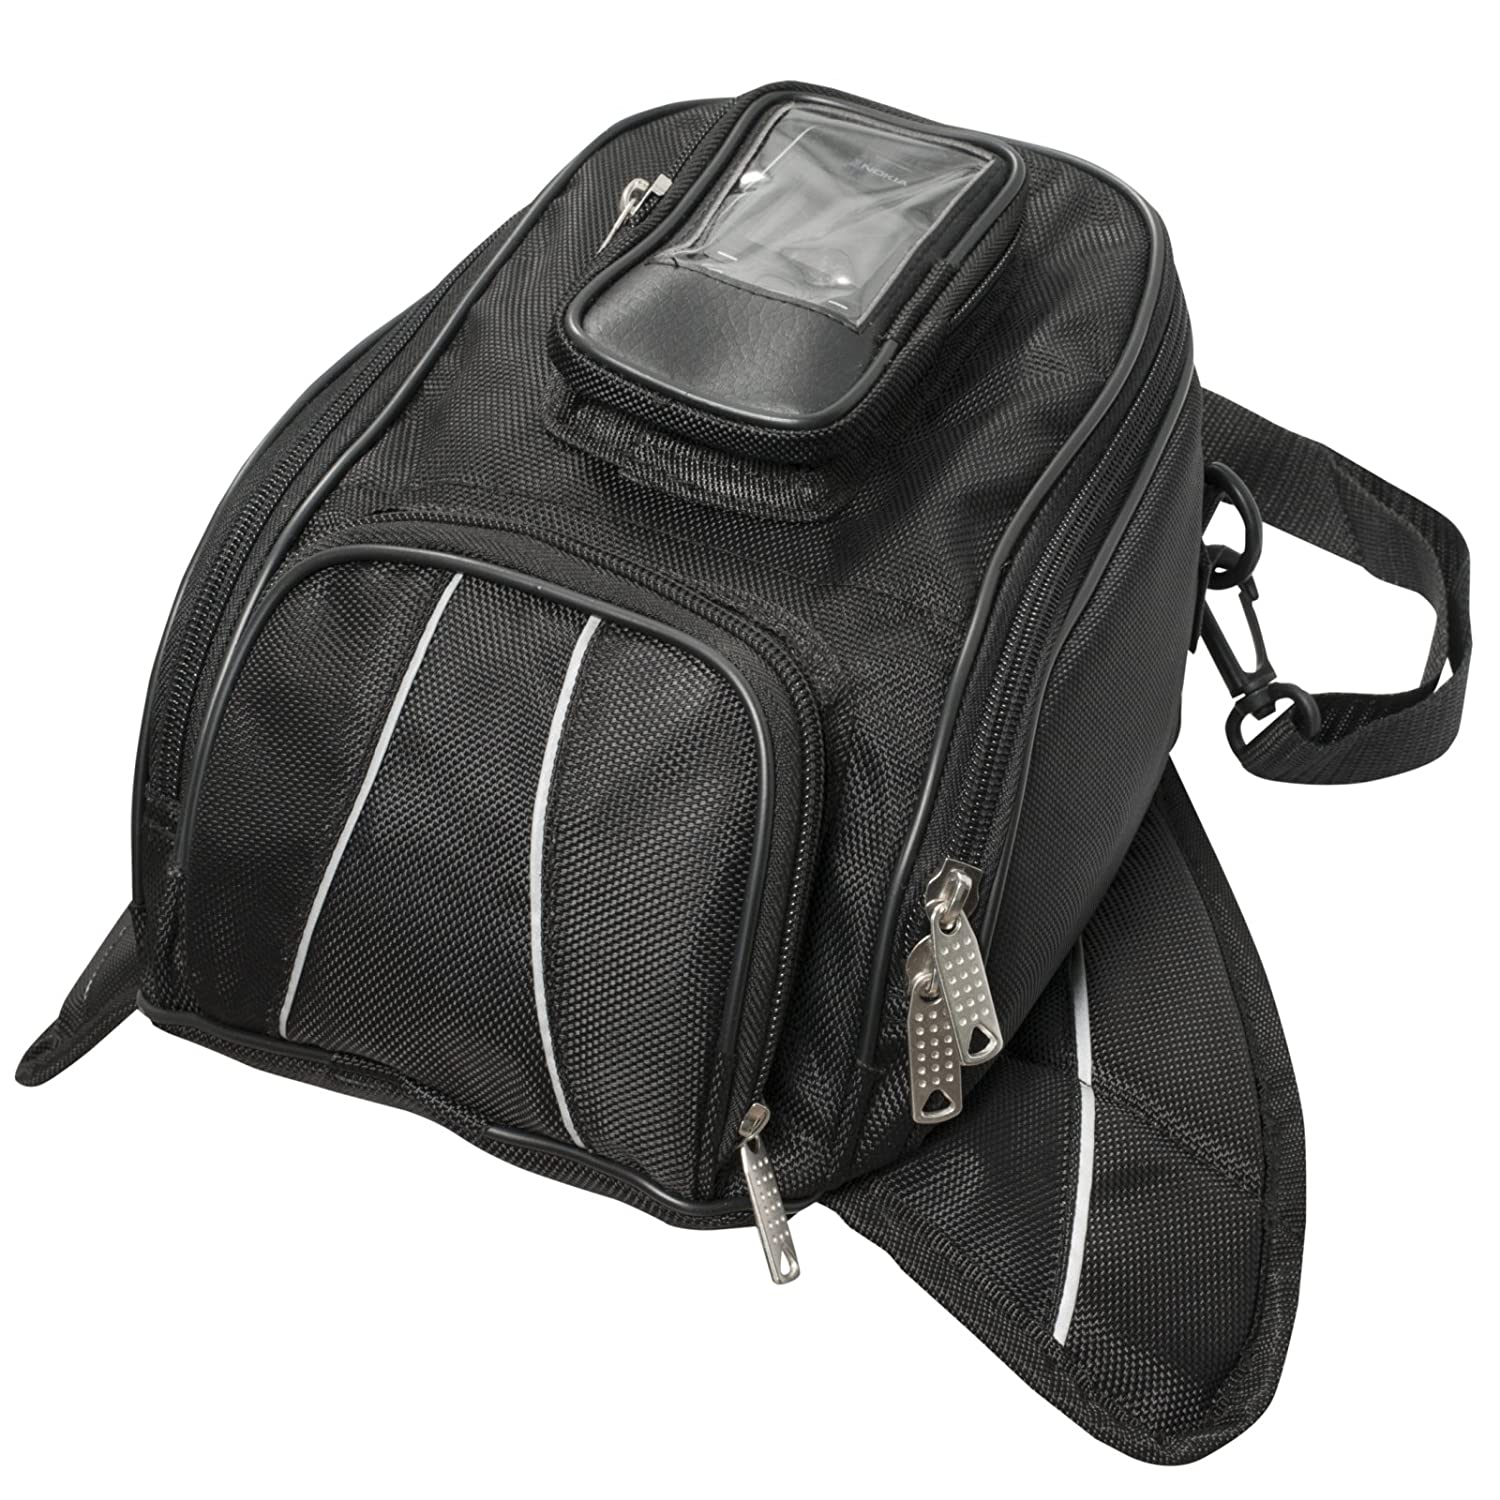 A-Pro Motorcycle Motorbike Luggage Tank Bag Waterproof Magnetic GPS Phone Pouch